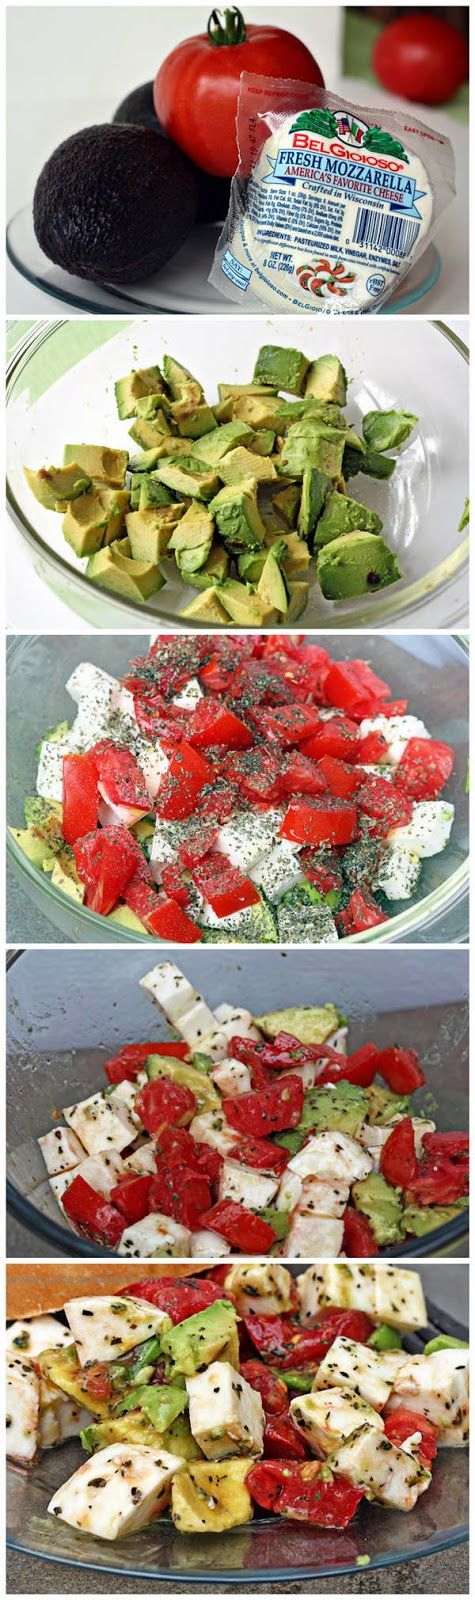 Avocado Tomato Mozzarella Salad